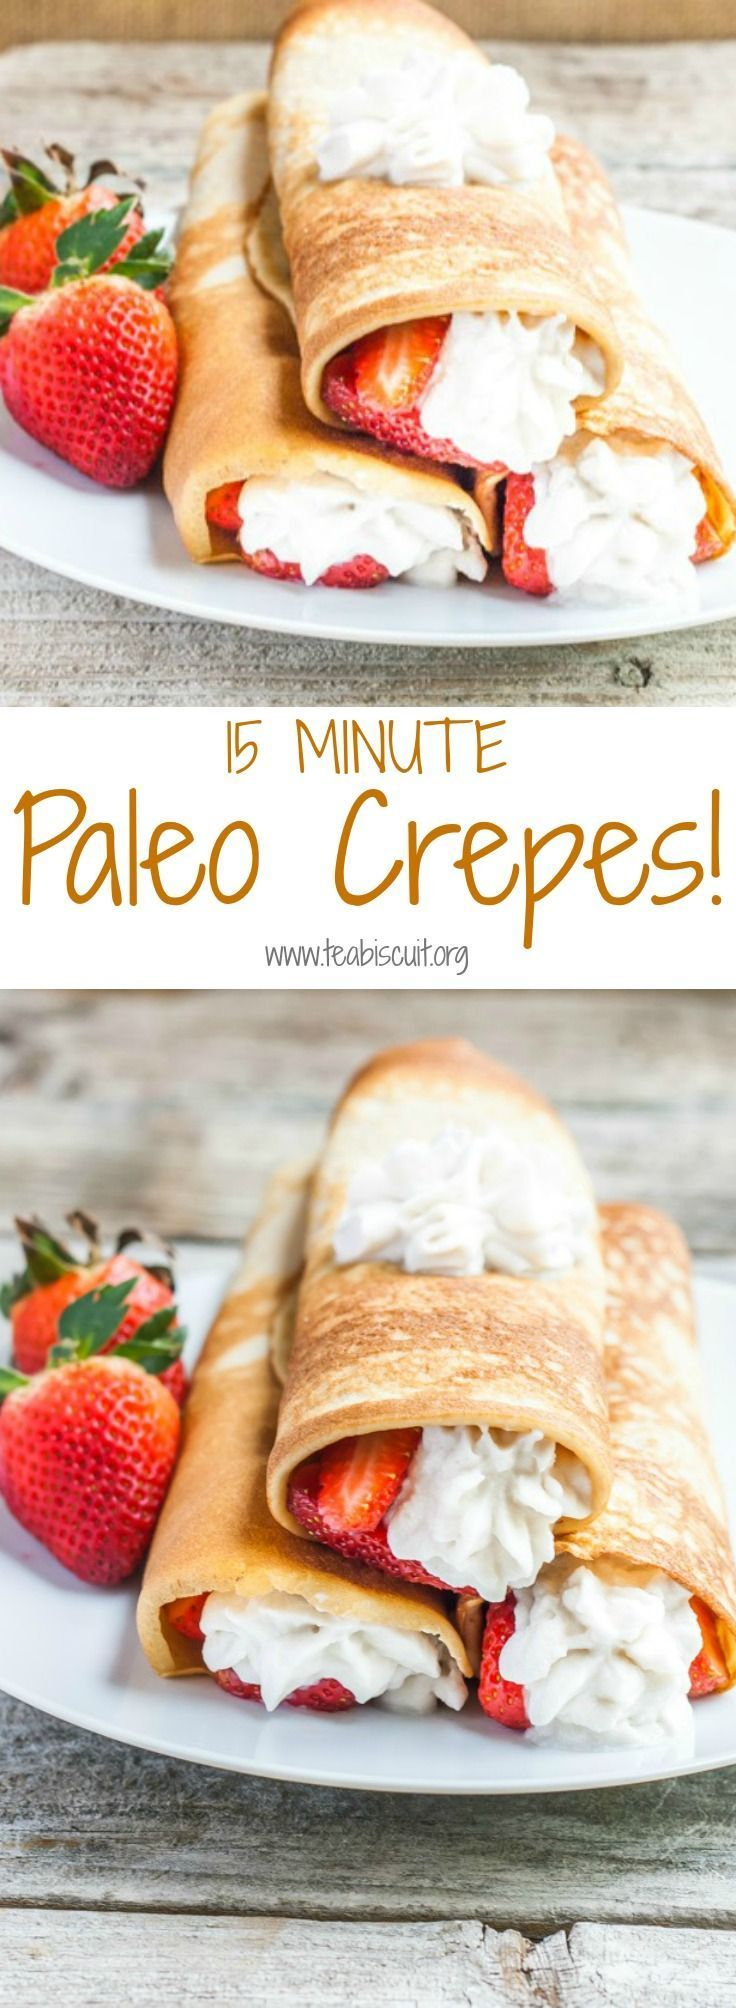 So fast and easy, make Paleo crepes in less than 15 Minutes! A Delicious Paelo Dessert made from scratch. Optional Coconut whipped cream recipe included!| Paleo | Grain Free | Gluten Free |